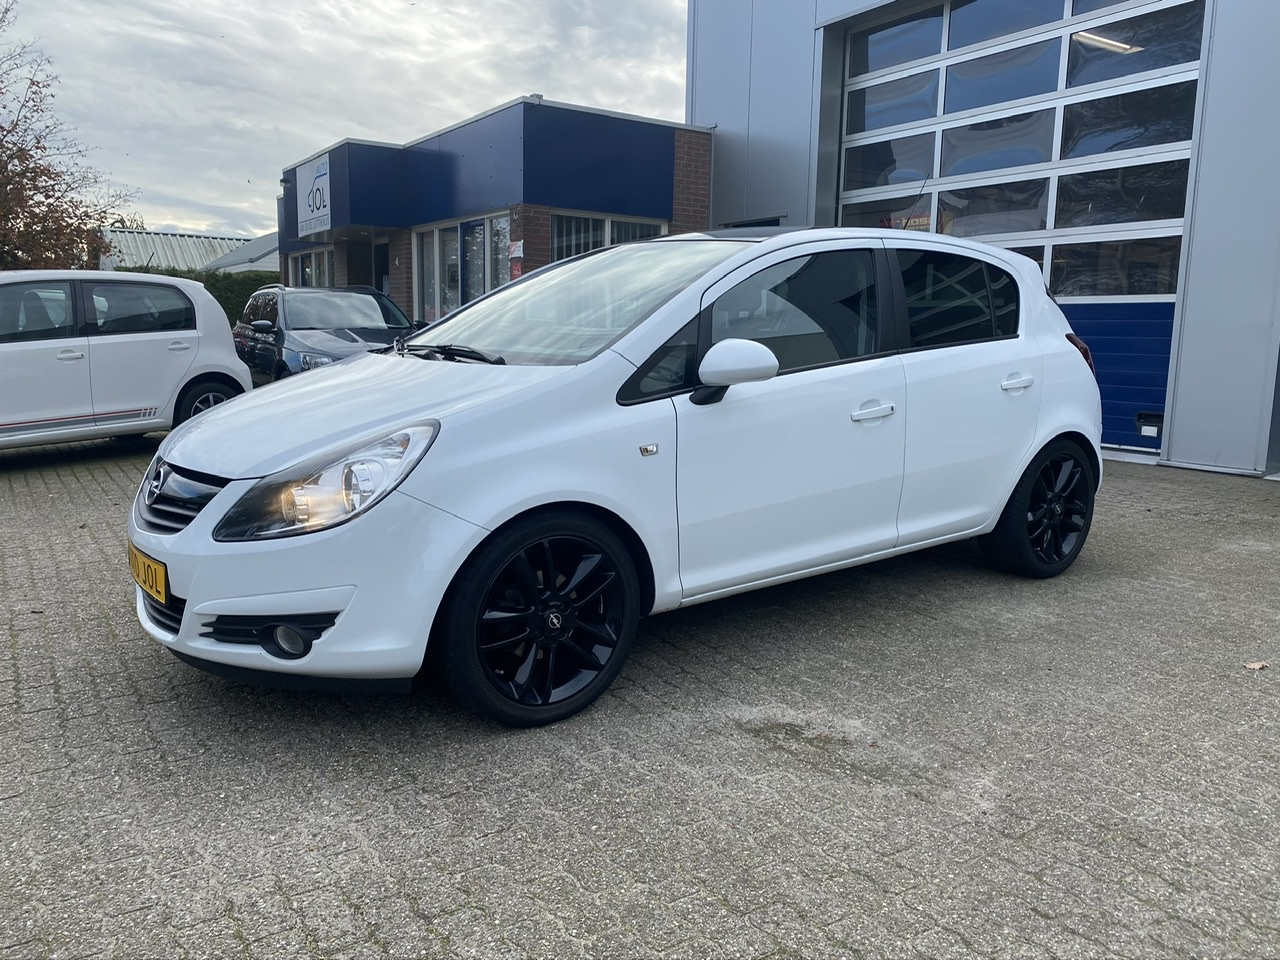 Opel Corsa 1.2-16V Black/White edition - airco